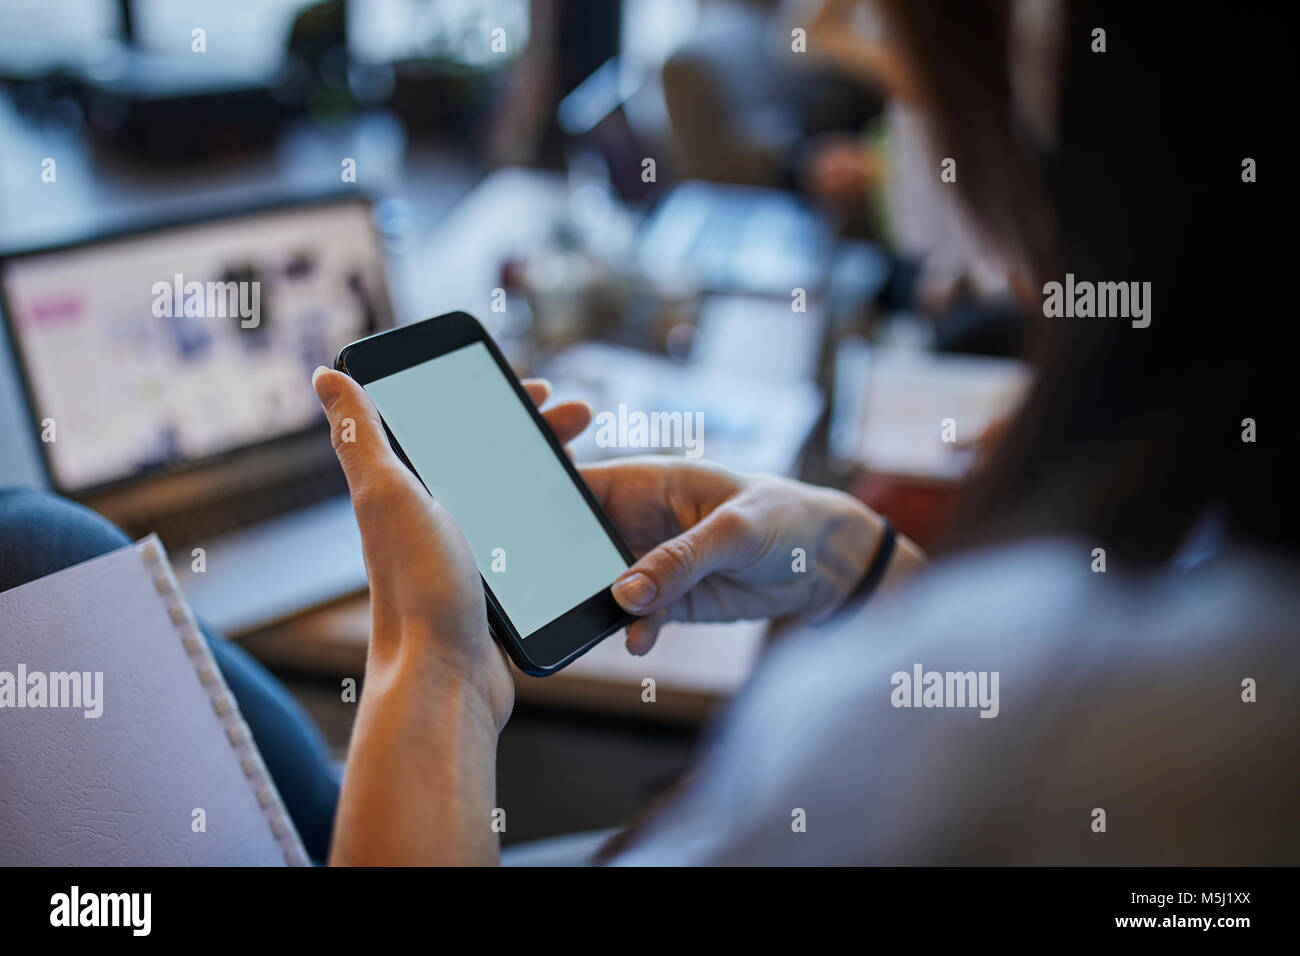 Young woman in cafe using smartphone with laptop in background - Stock Image